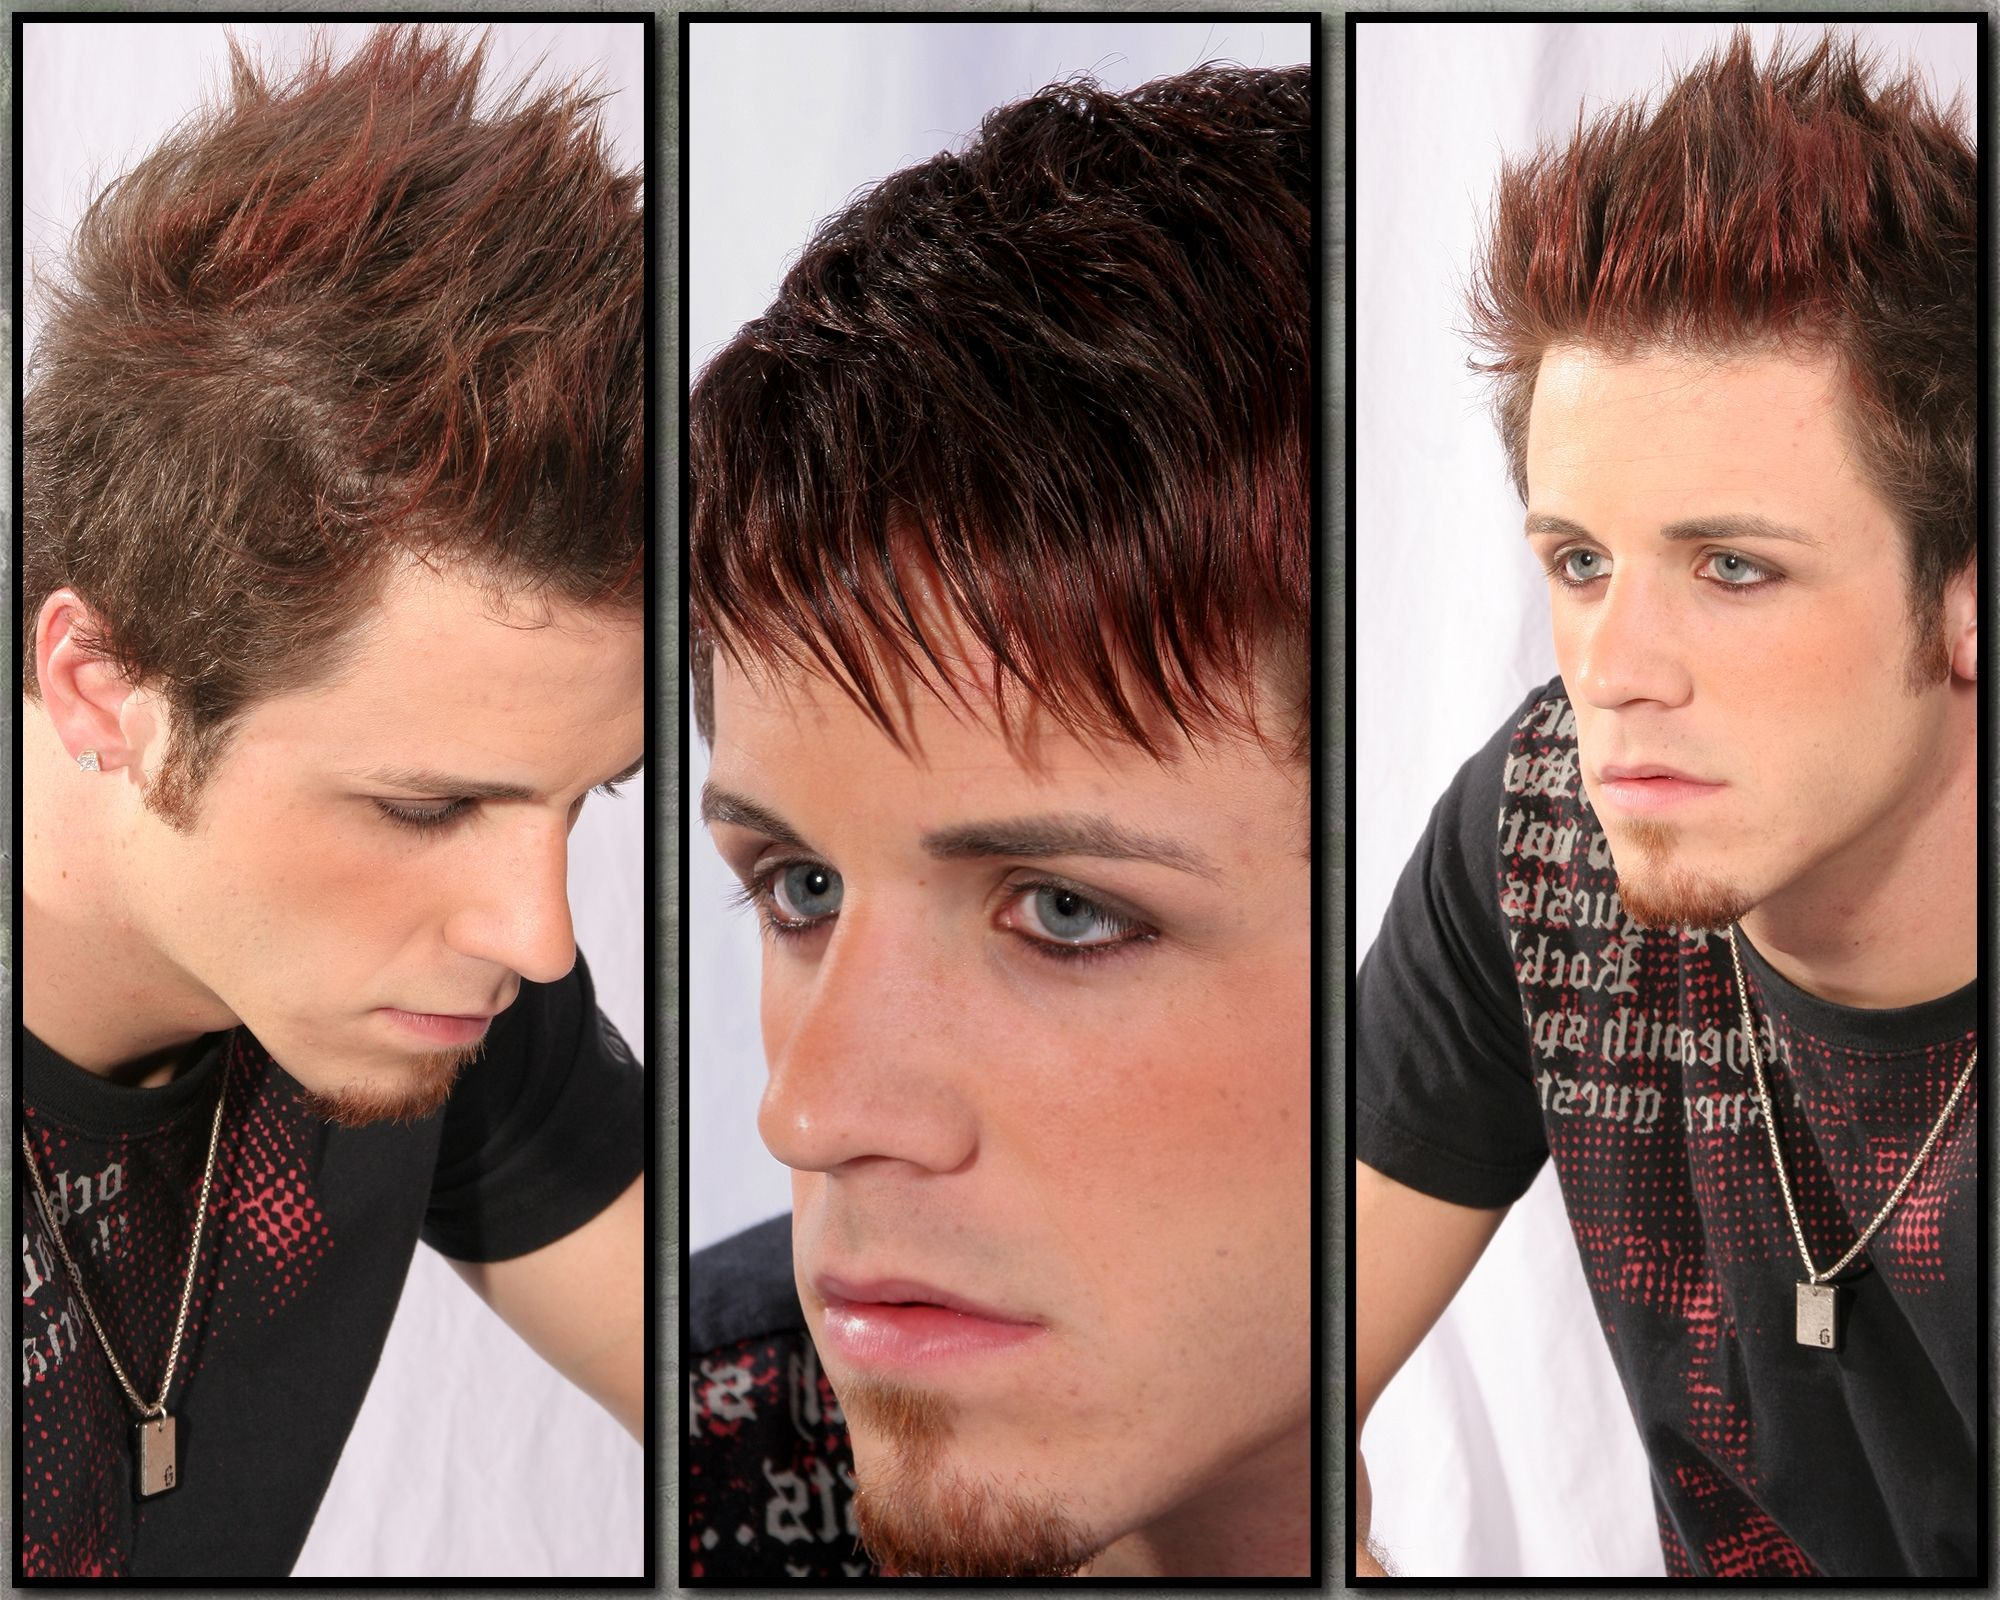 Mens haircut with red colorjill shear xpectations jillus work